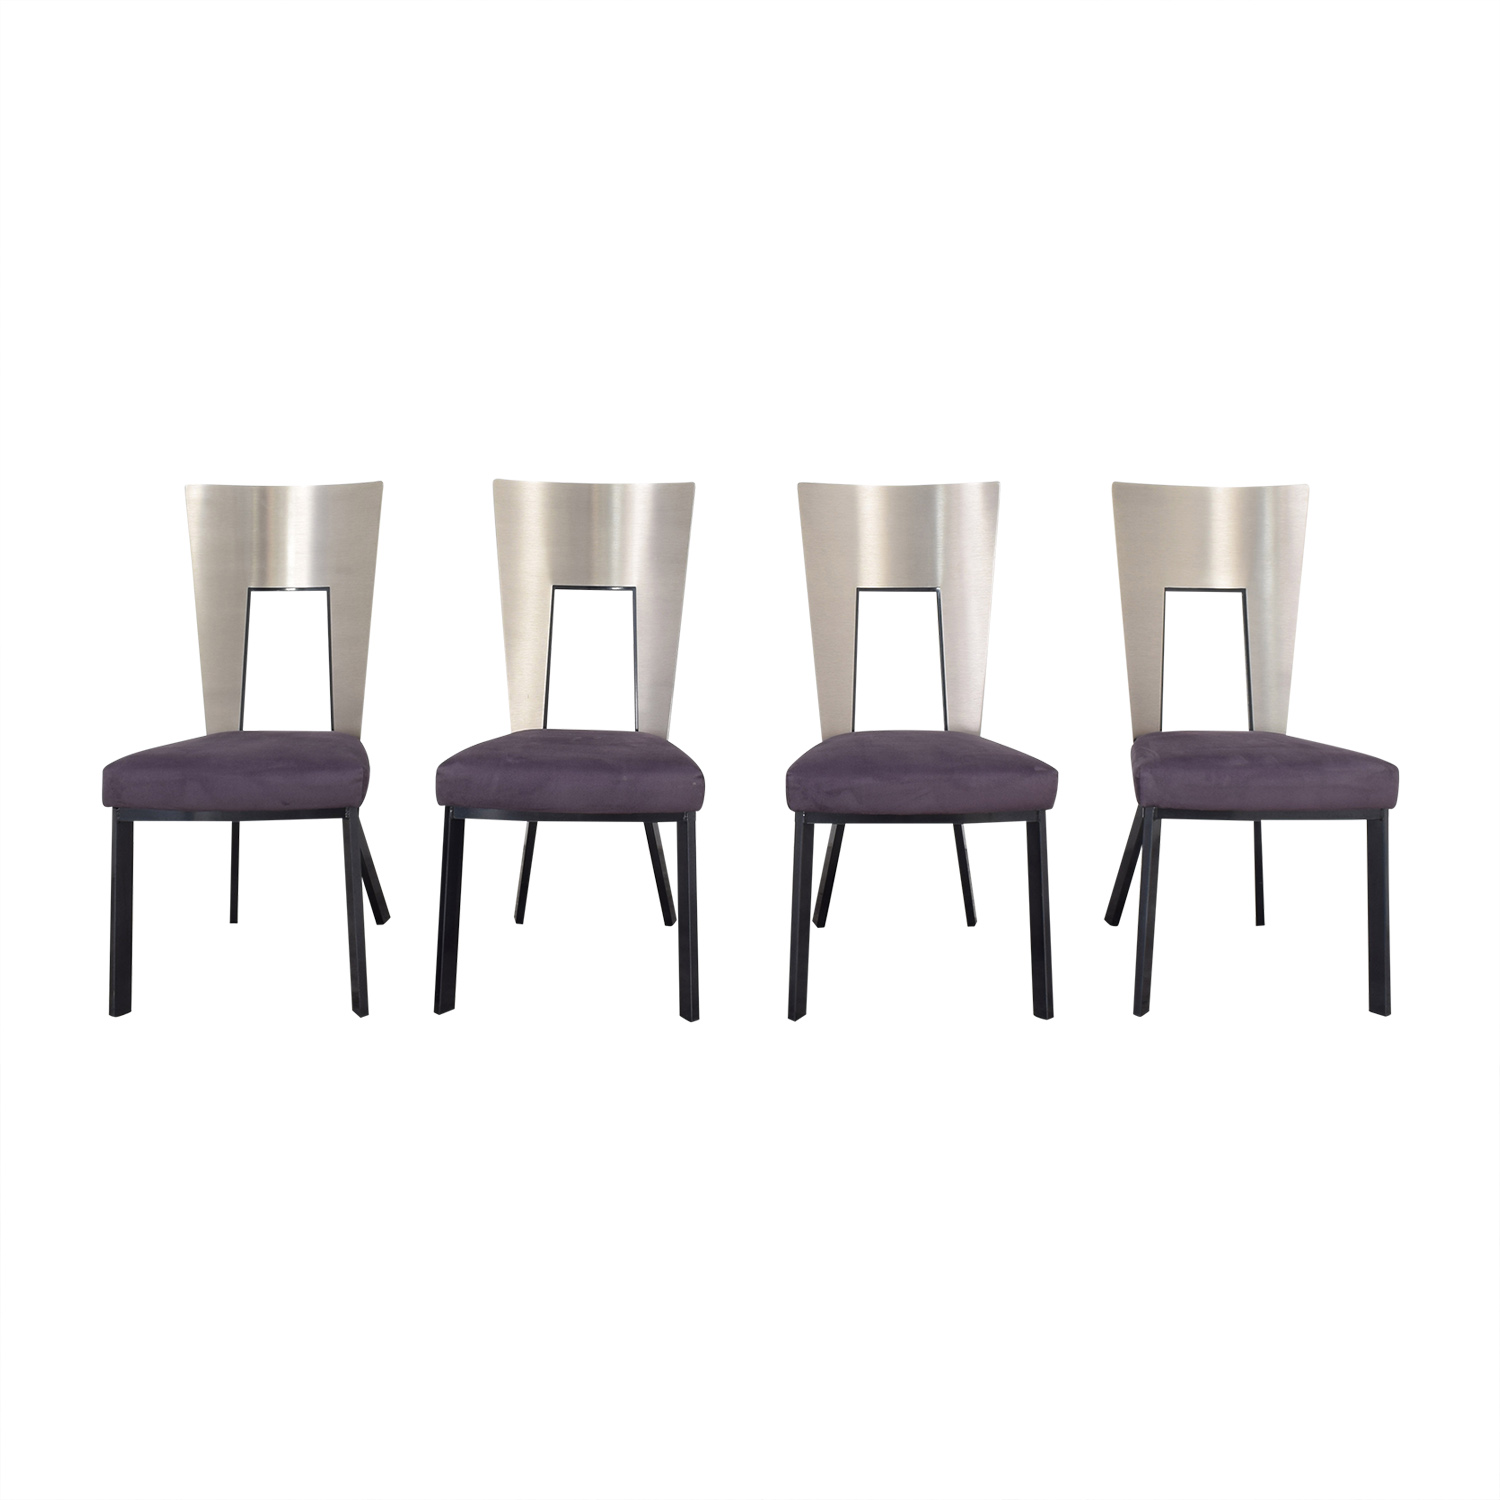 Elite Modern Elite Modern Regal Dining Chairs price